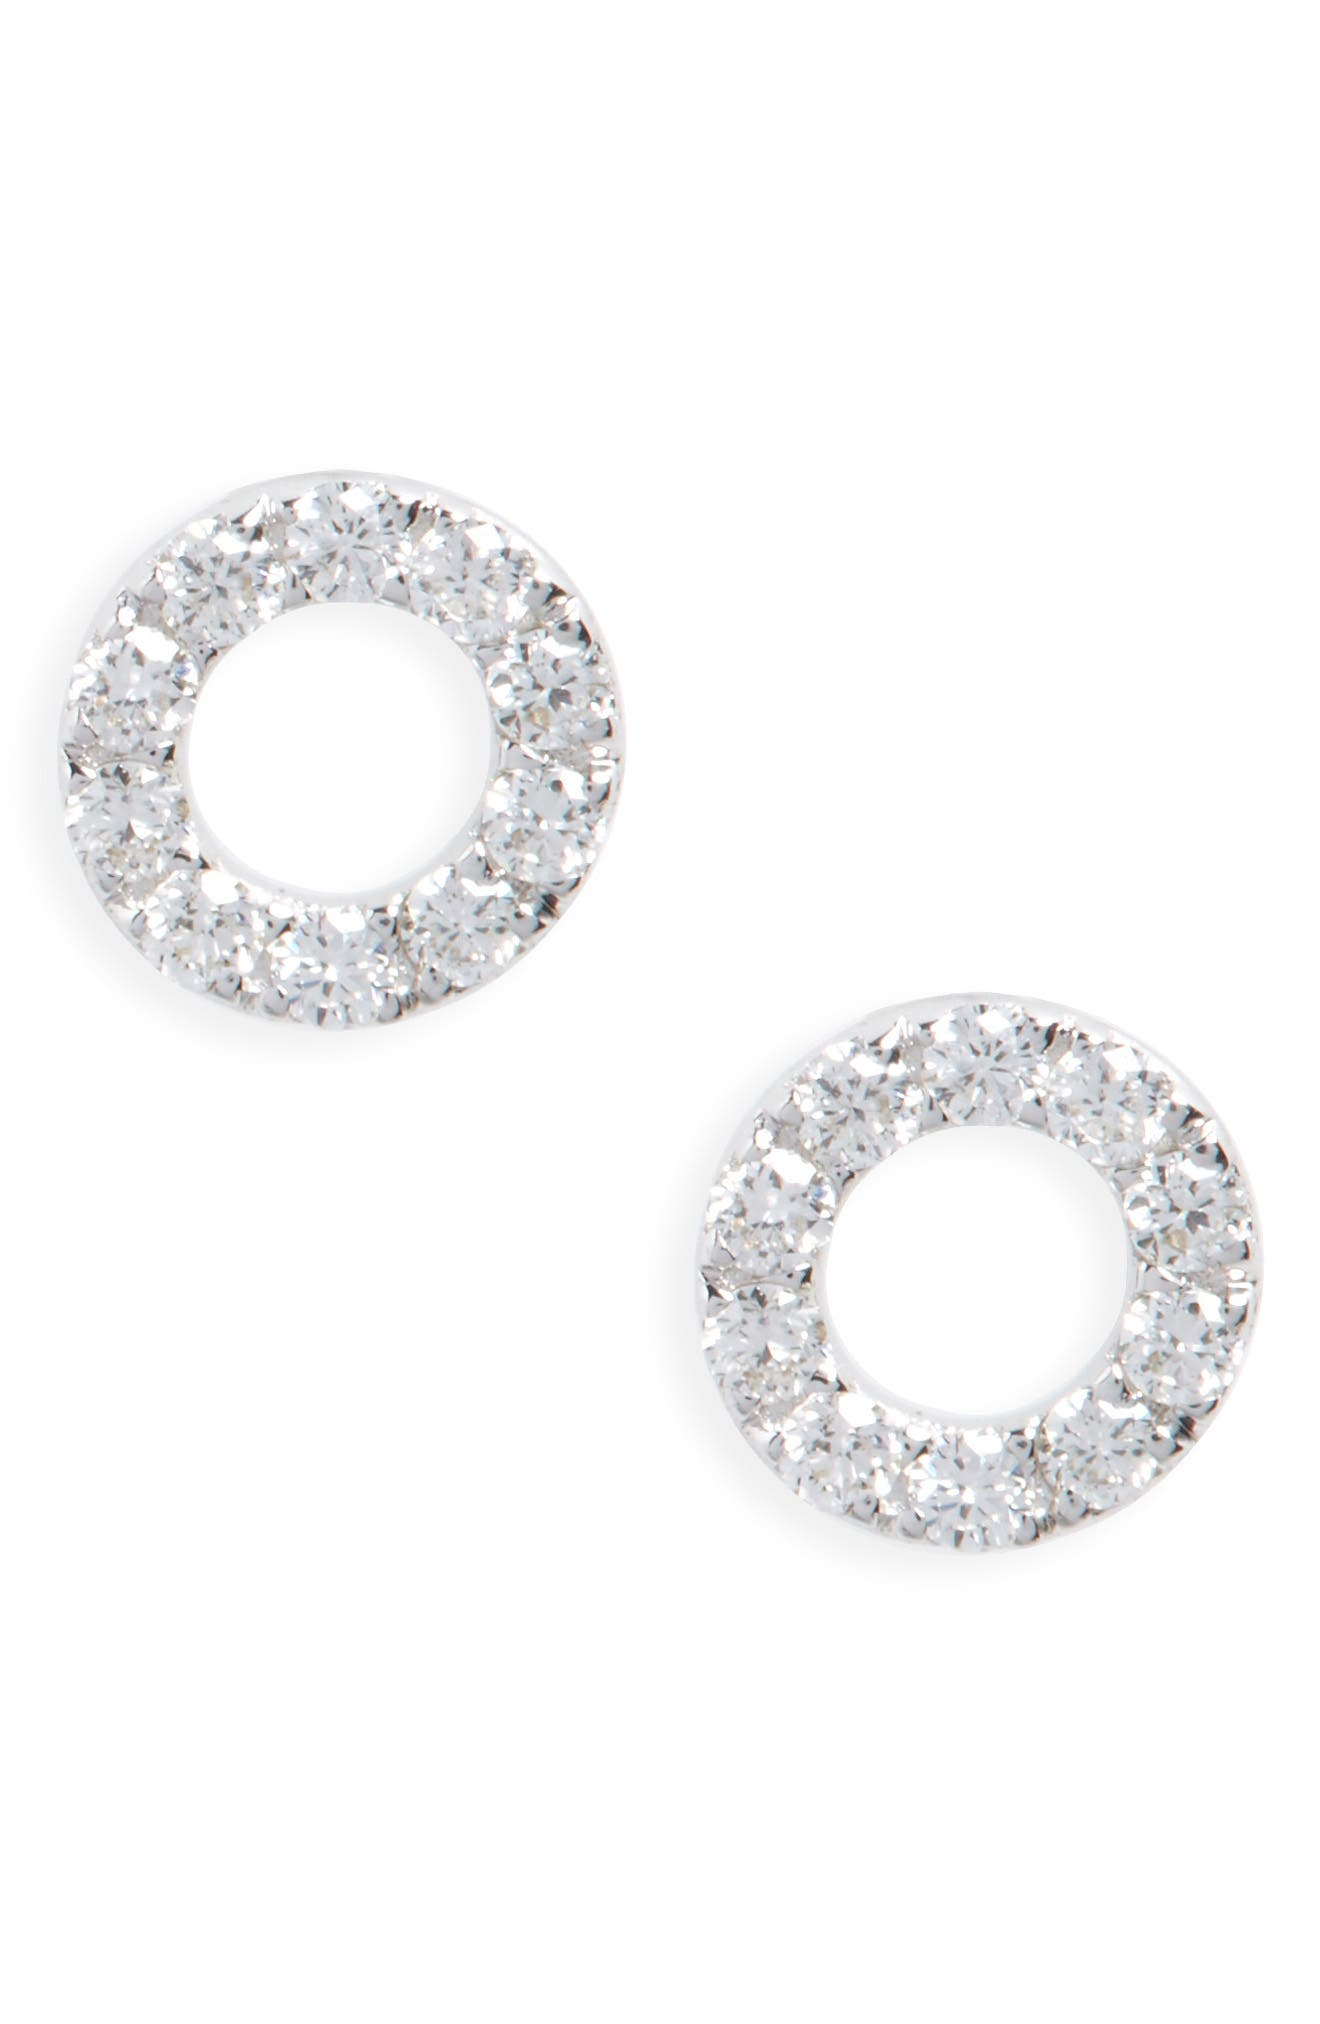 BONY LEVY Simple Obsessions Geo Circle Diamond Stud Earrings